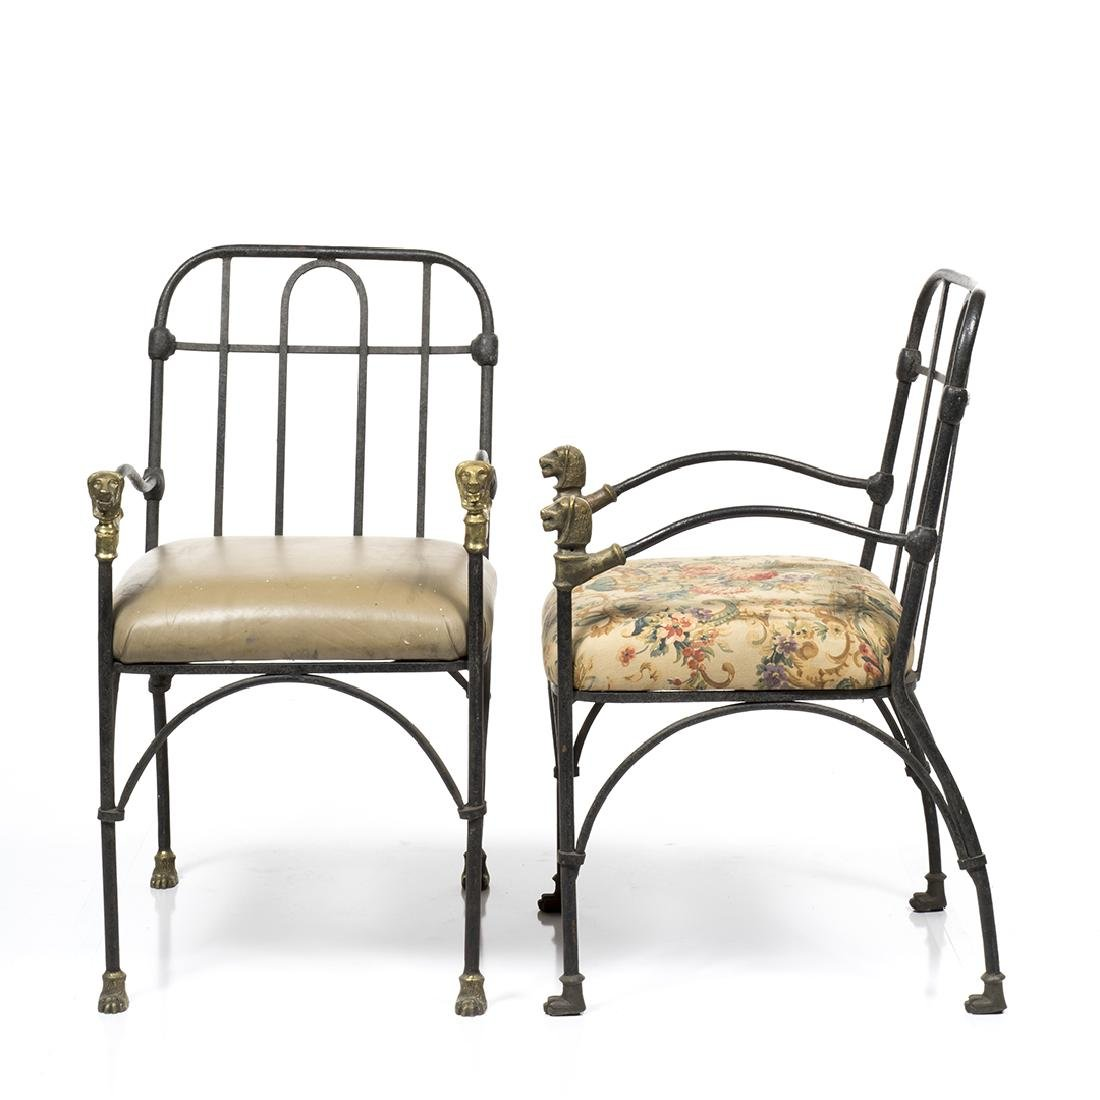 Diego Giacometti Style Chairs (2) - 2